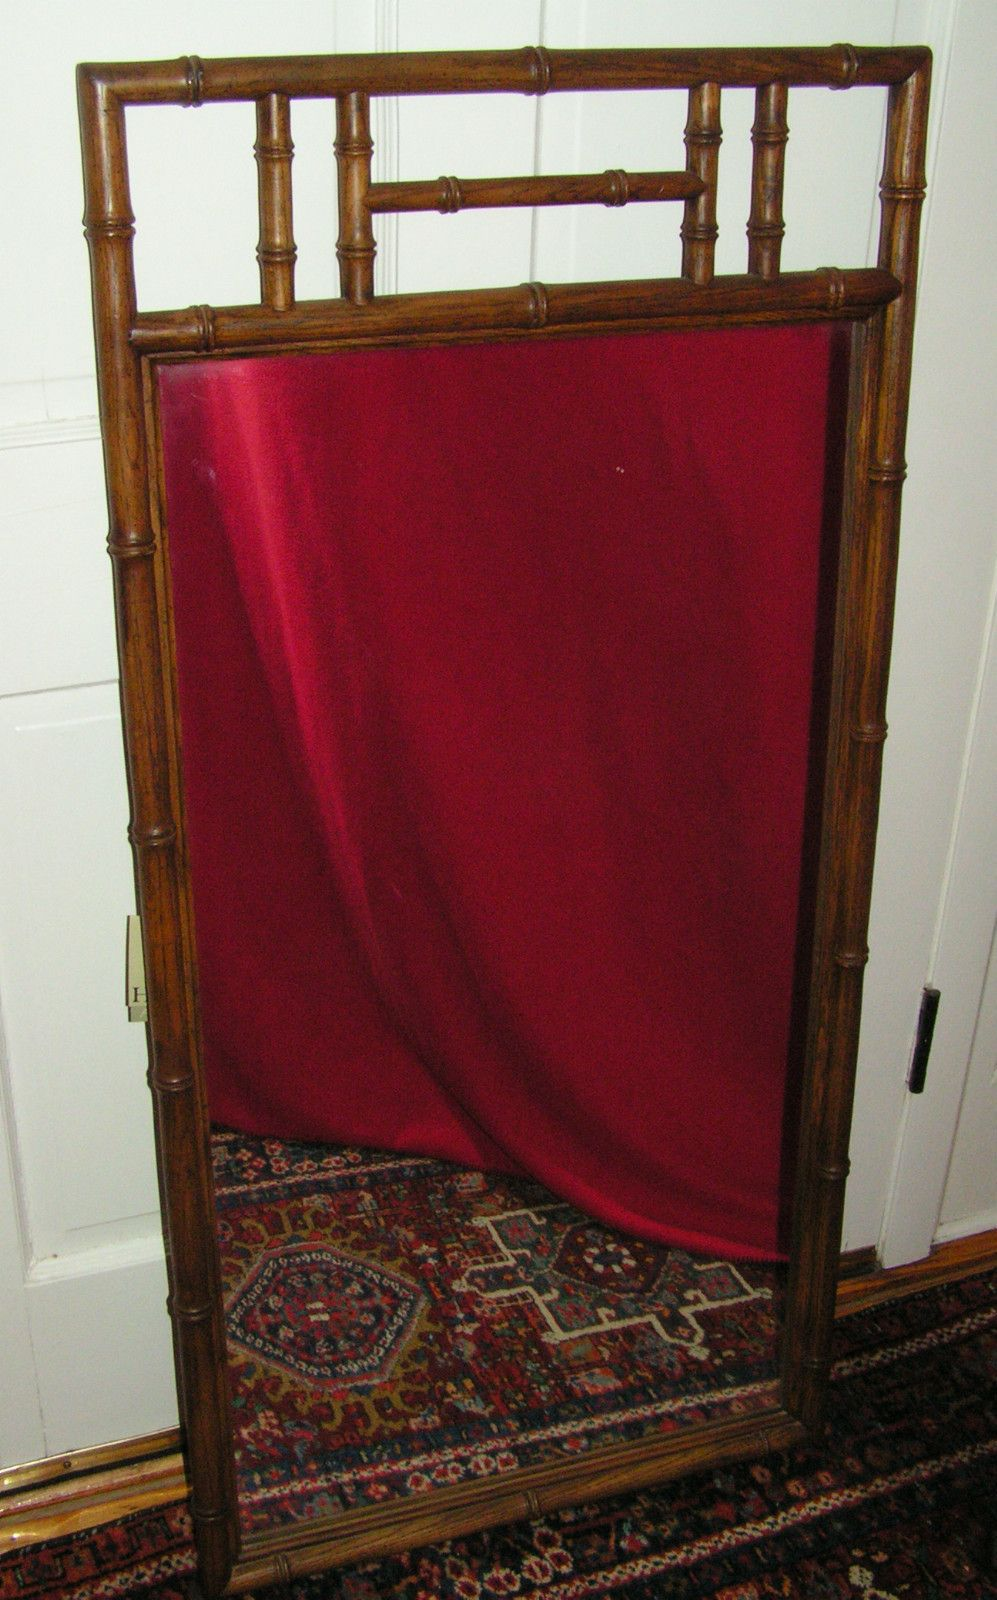 Henredon faux bamboo mirror found on ebay.